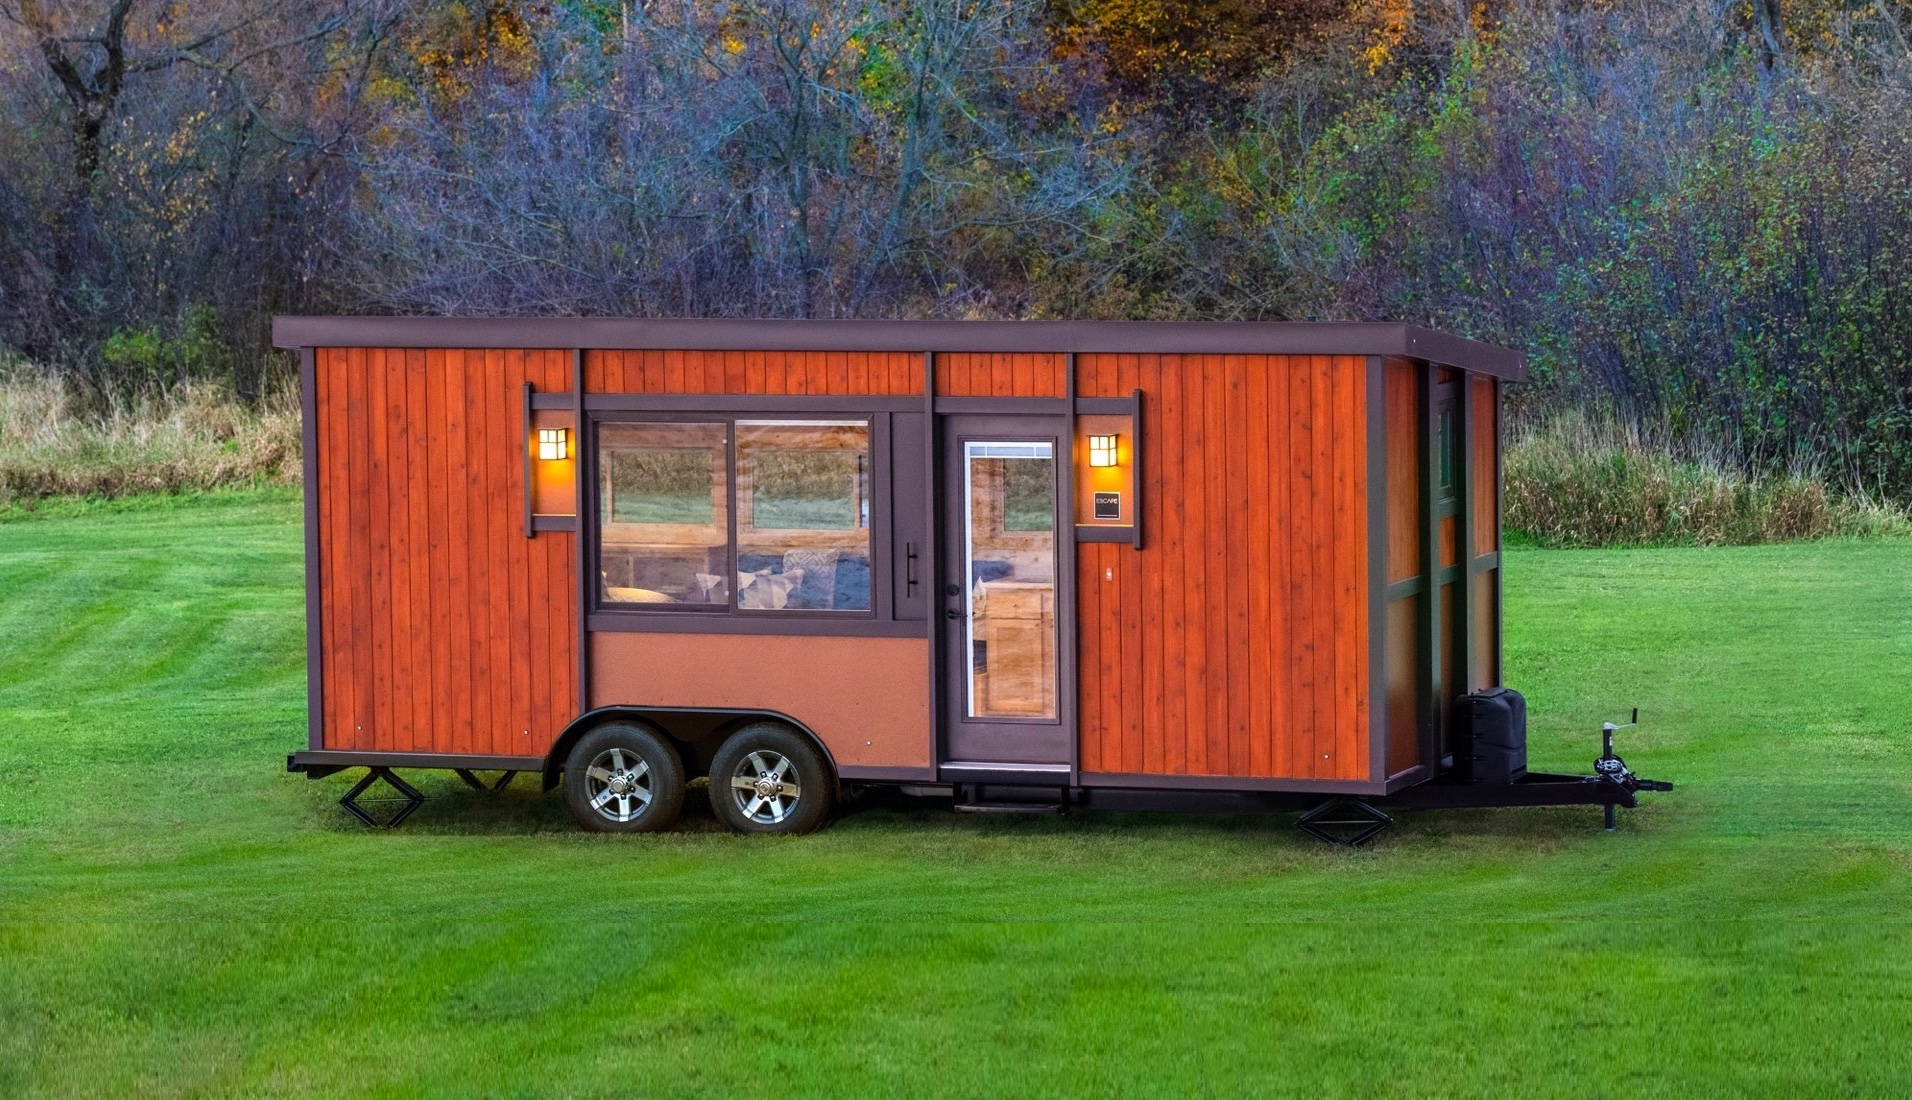 Home | Tiny Houses